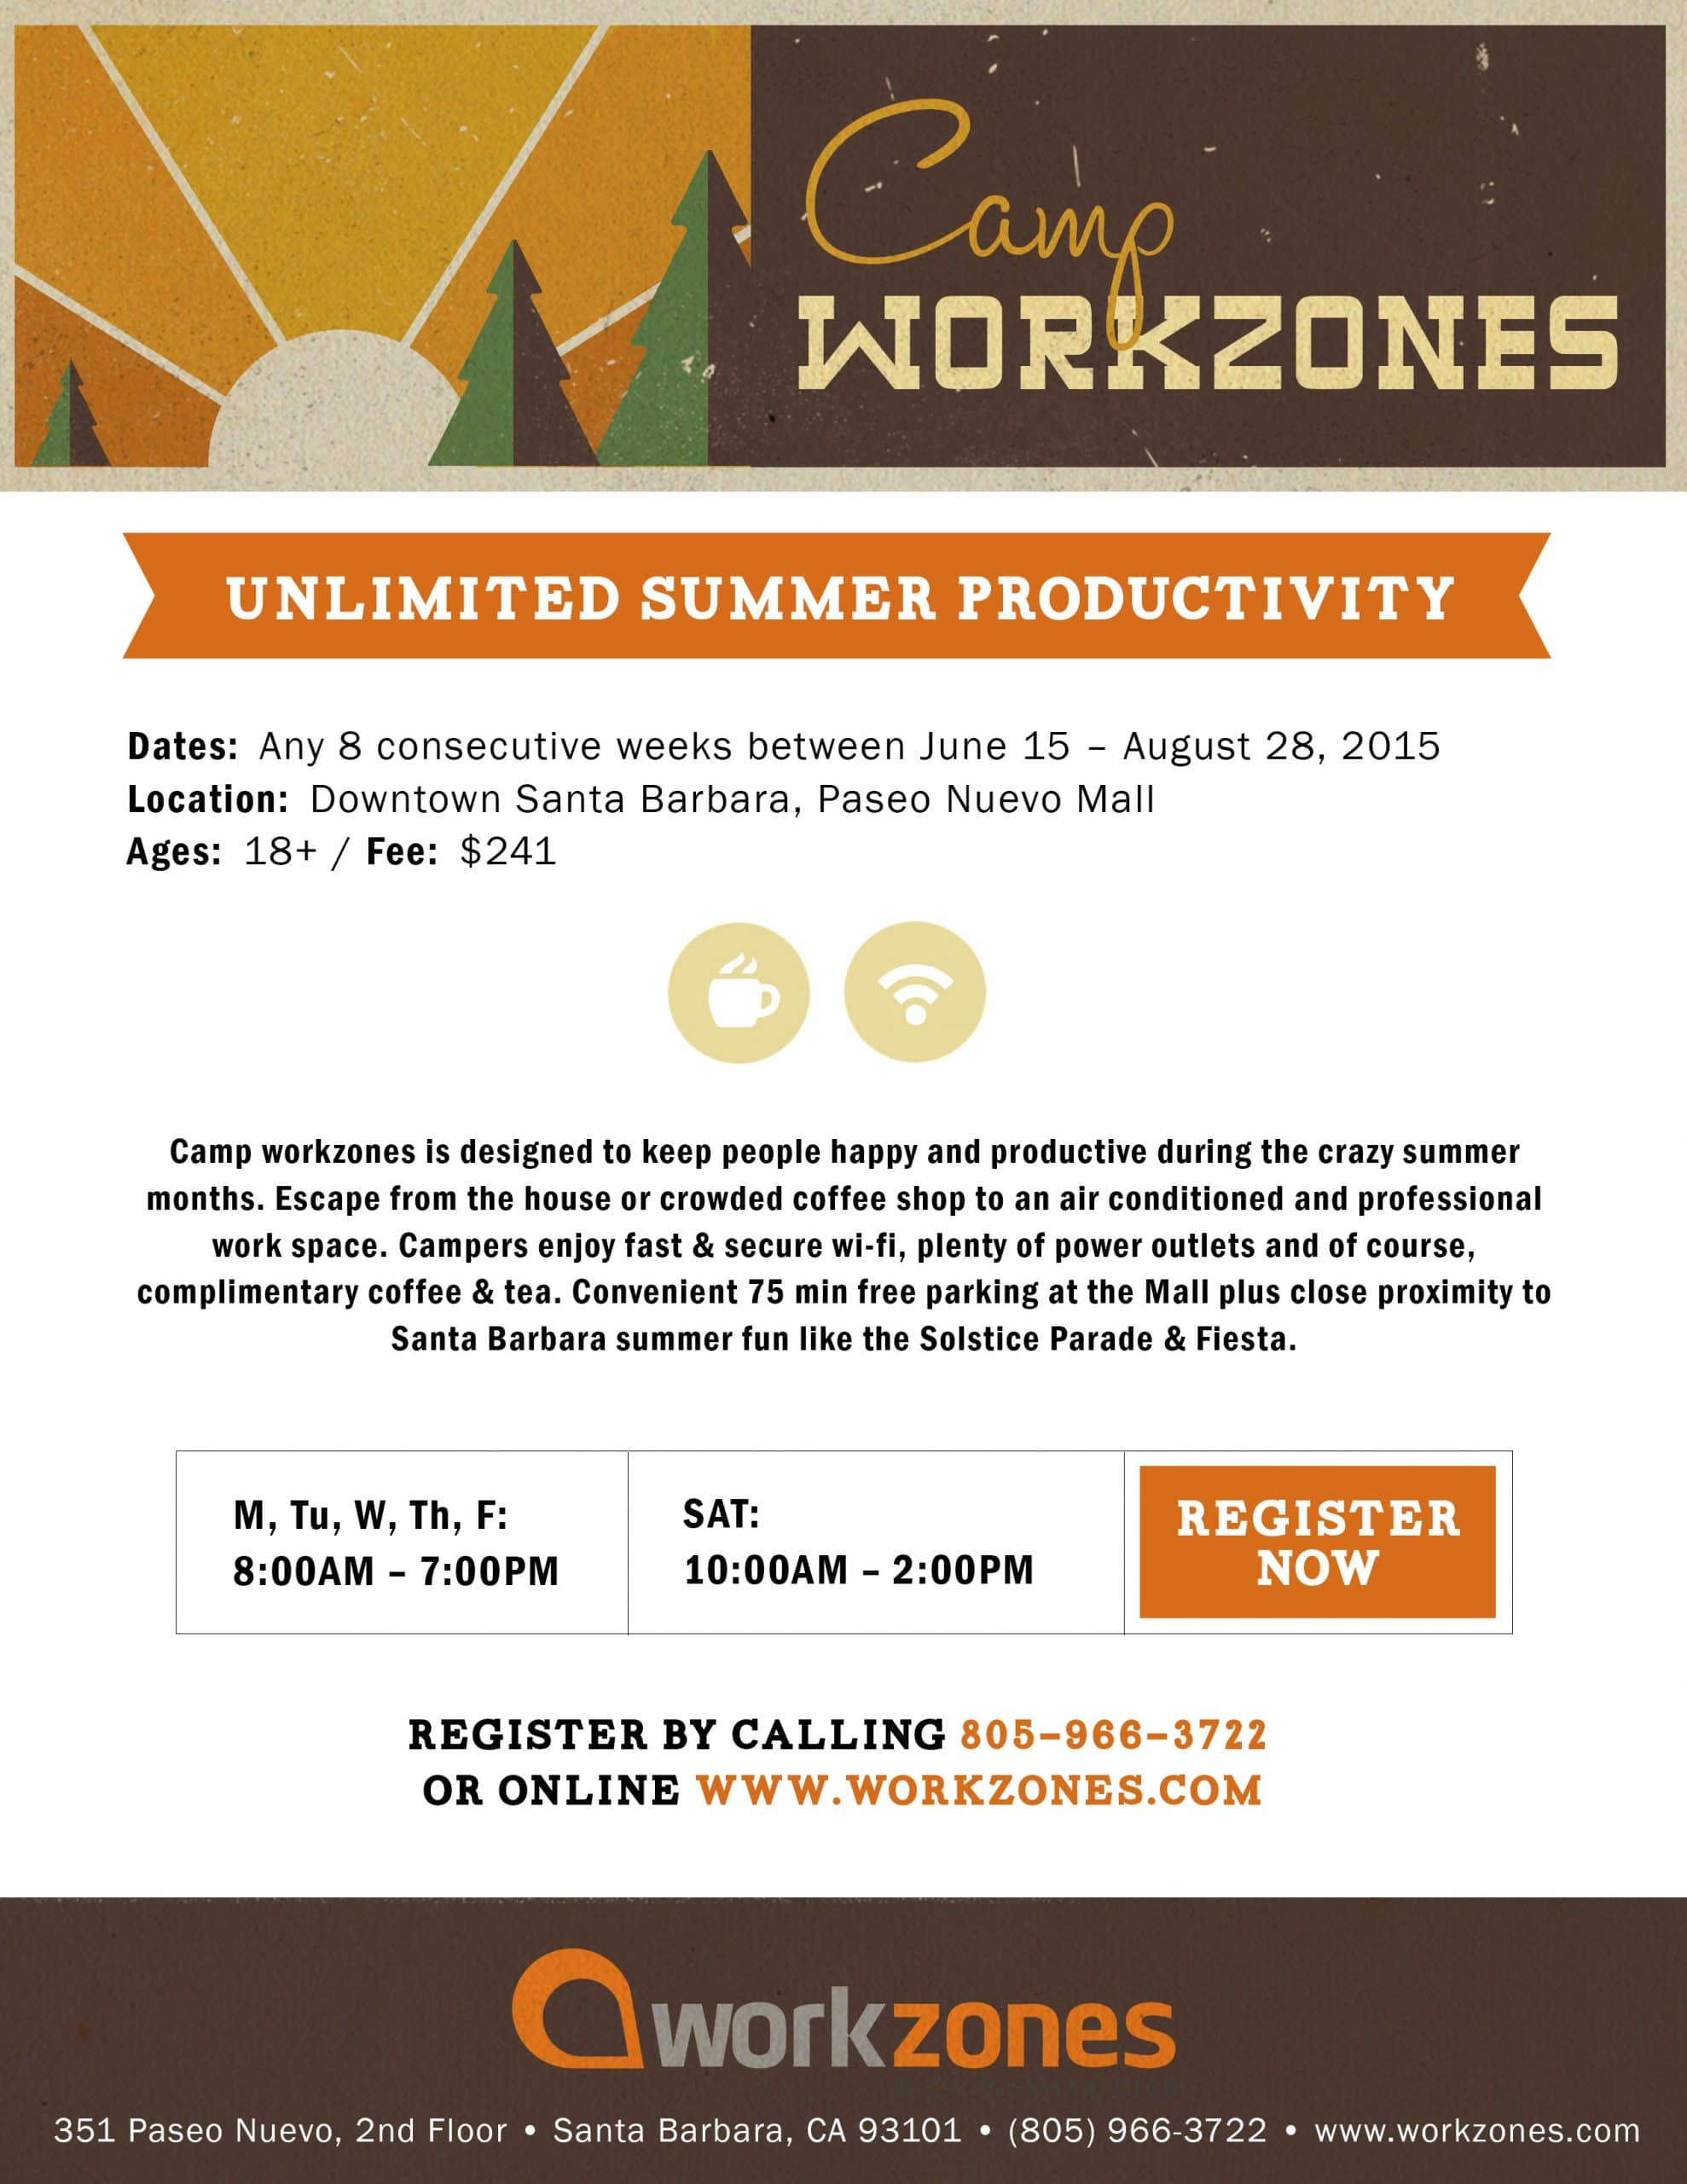 Camp Workzones - unlimited summer productivity